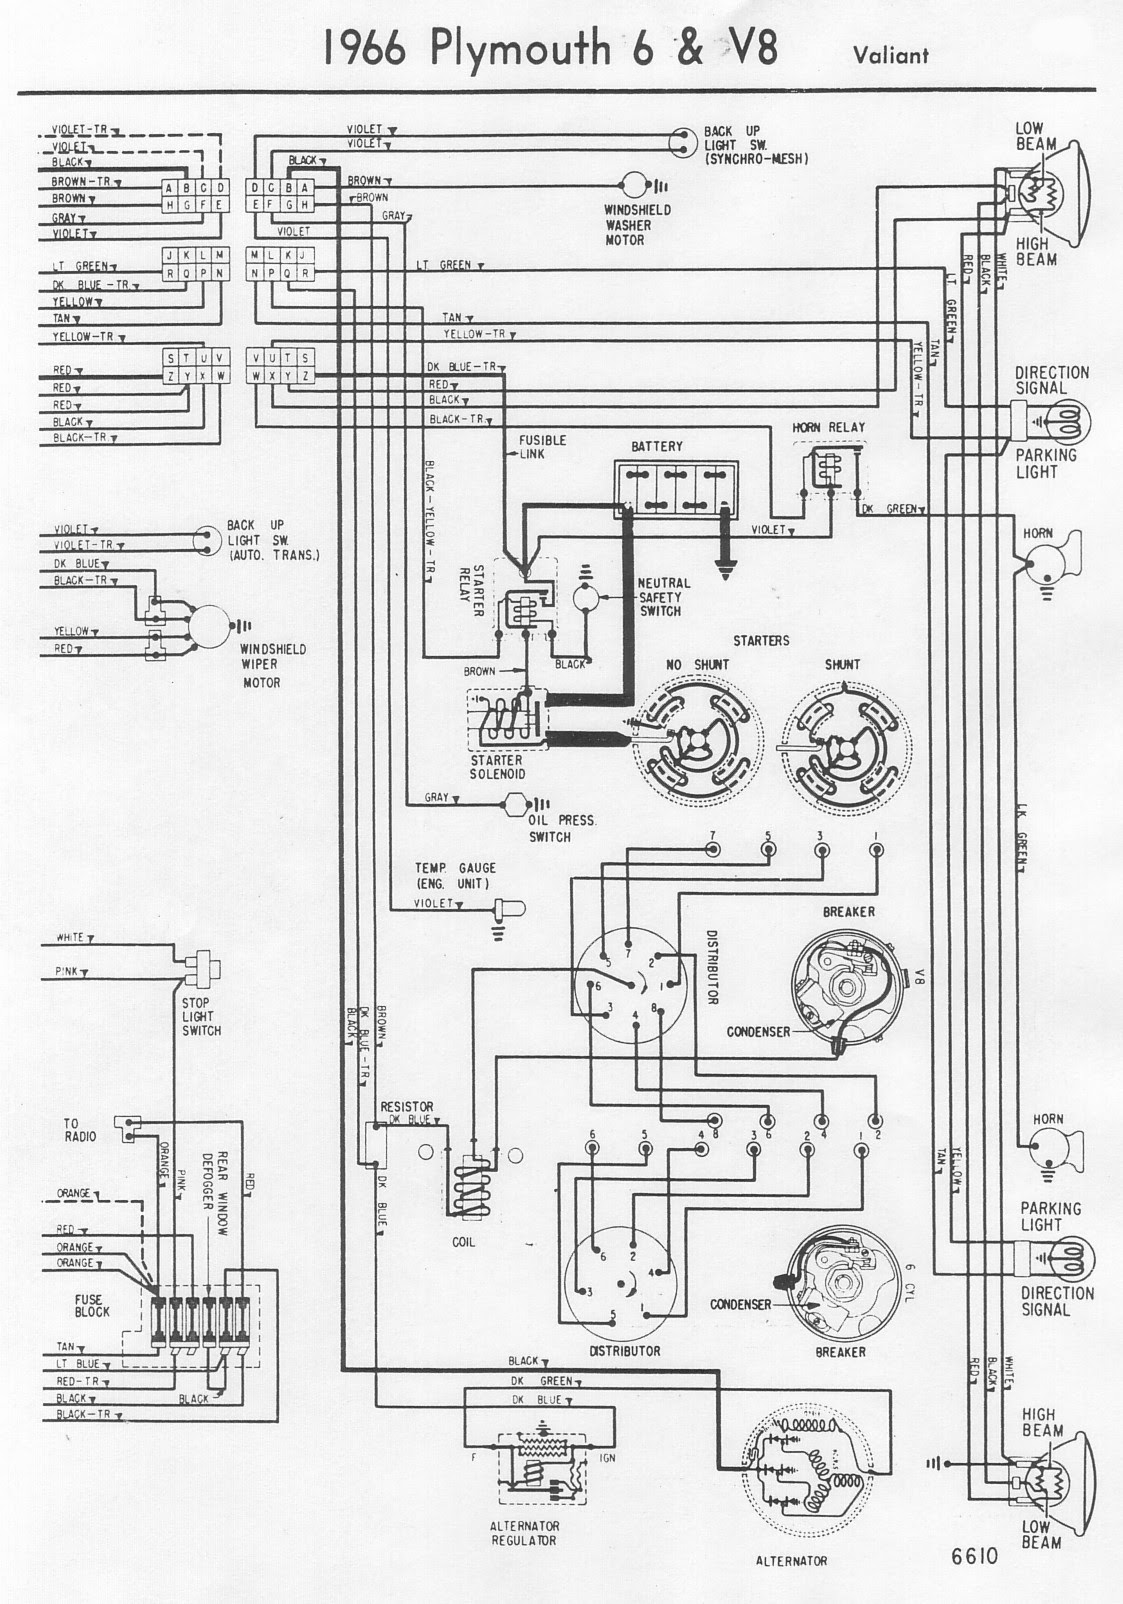 1966 Plymouth Barracuda Fuse Box Wiring Wiring Diagram Local A Local A Maceratadoc It